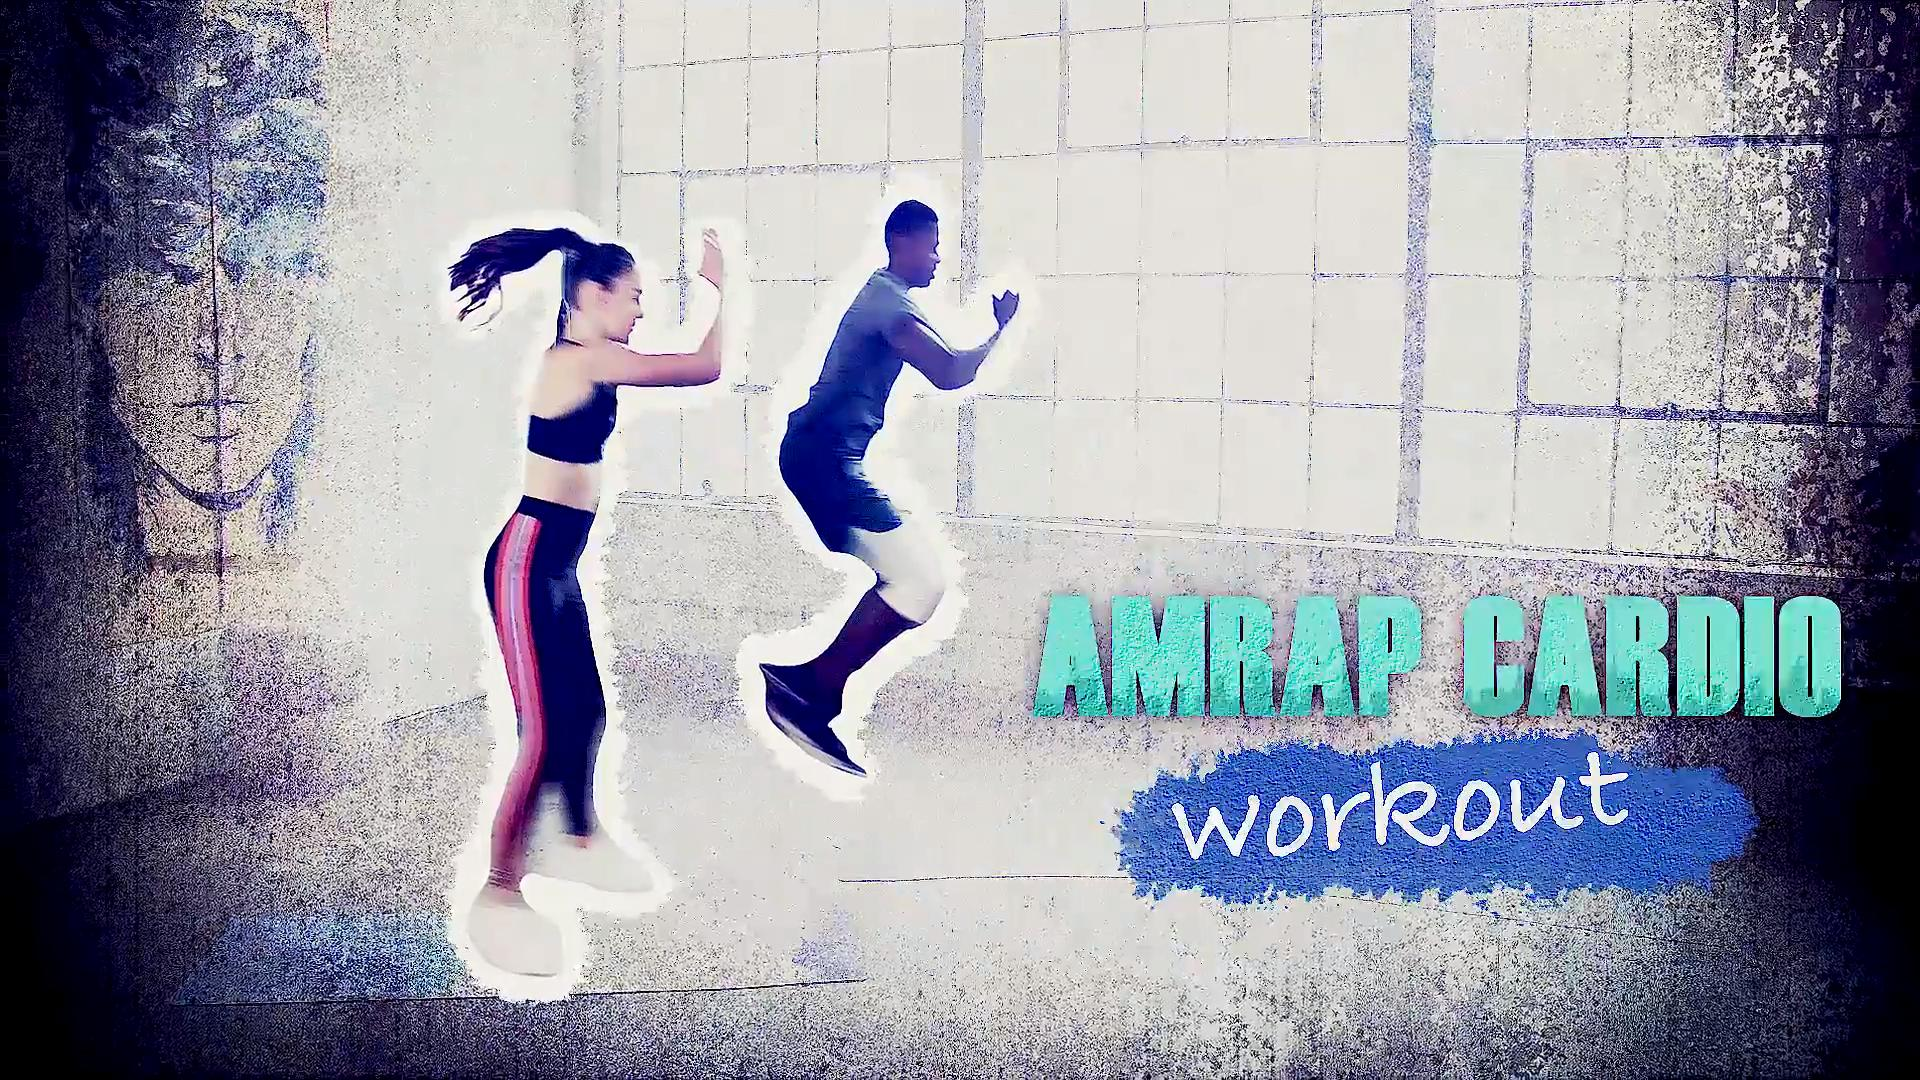 Workout 3: AMRAP Cardio